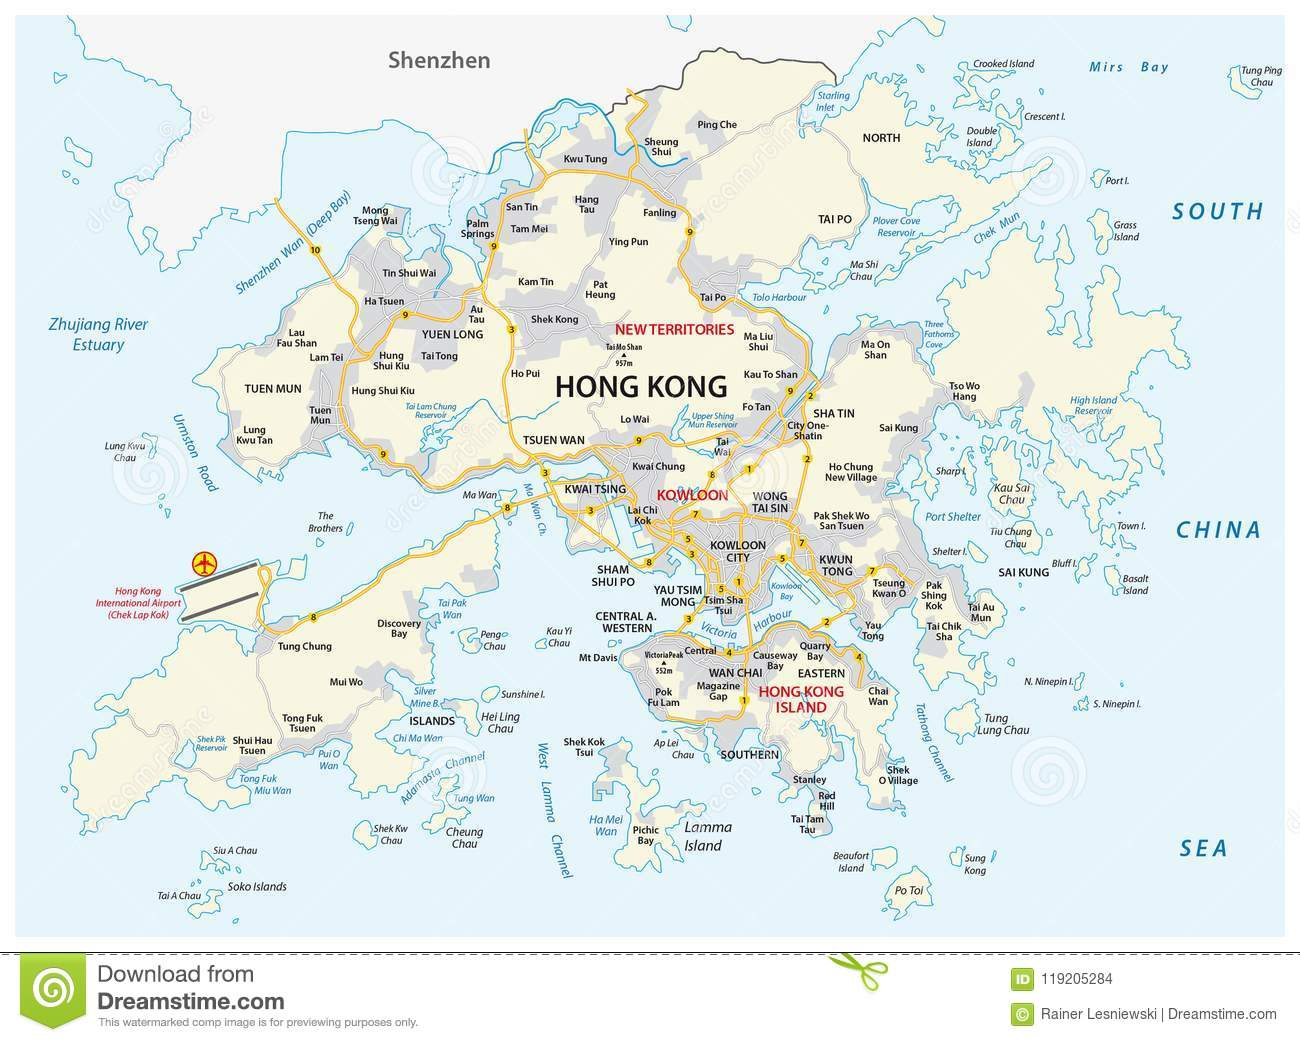 Map Of China Region.Hong Kong Special Administrative Region Of The People S Republic Of